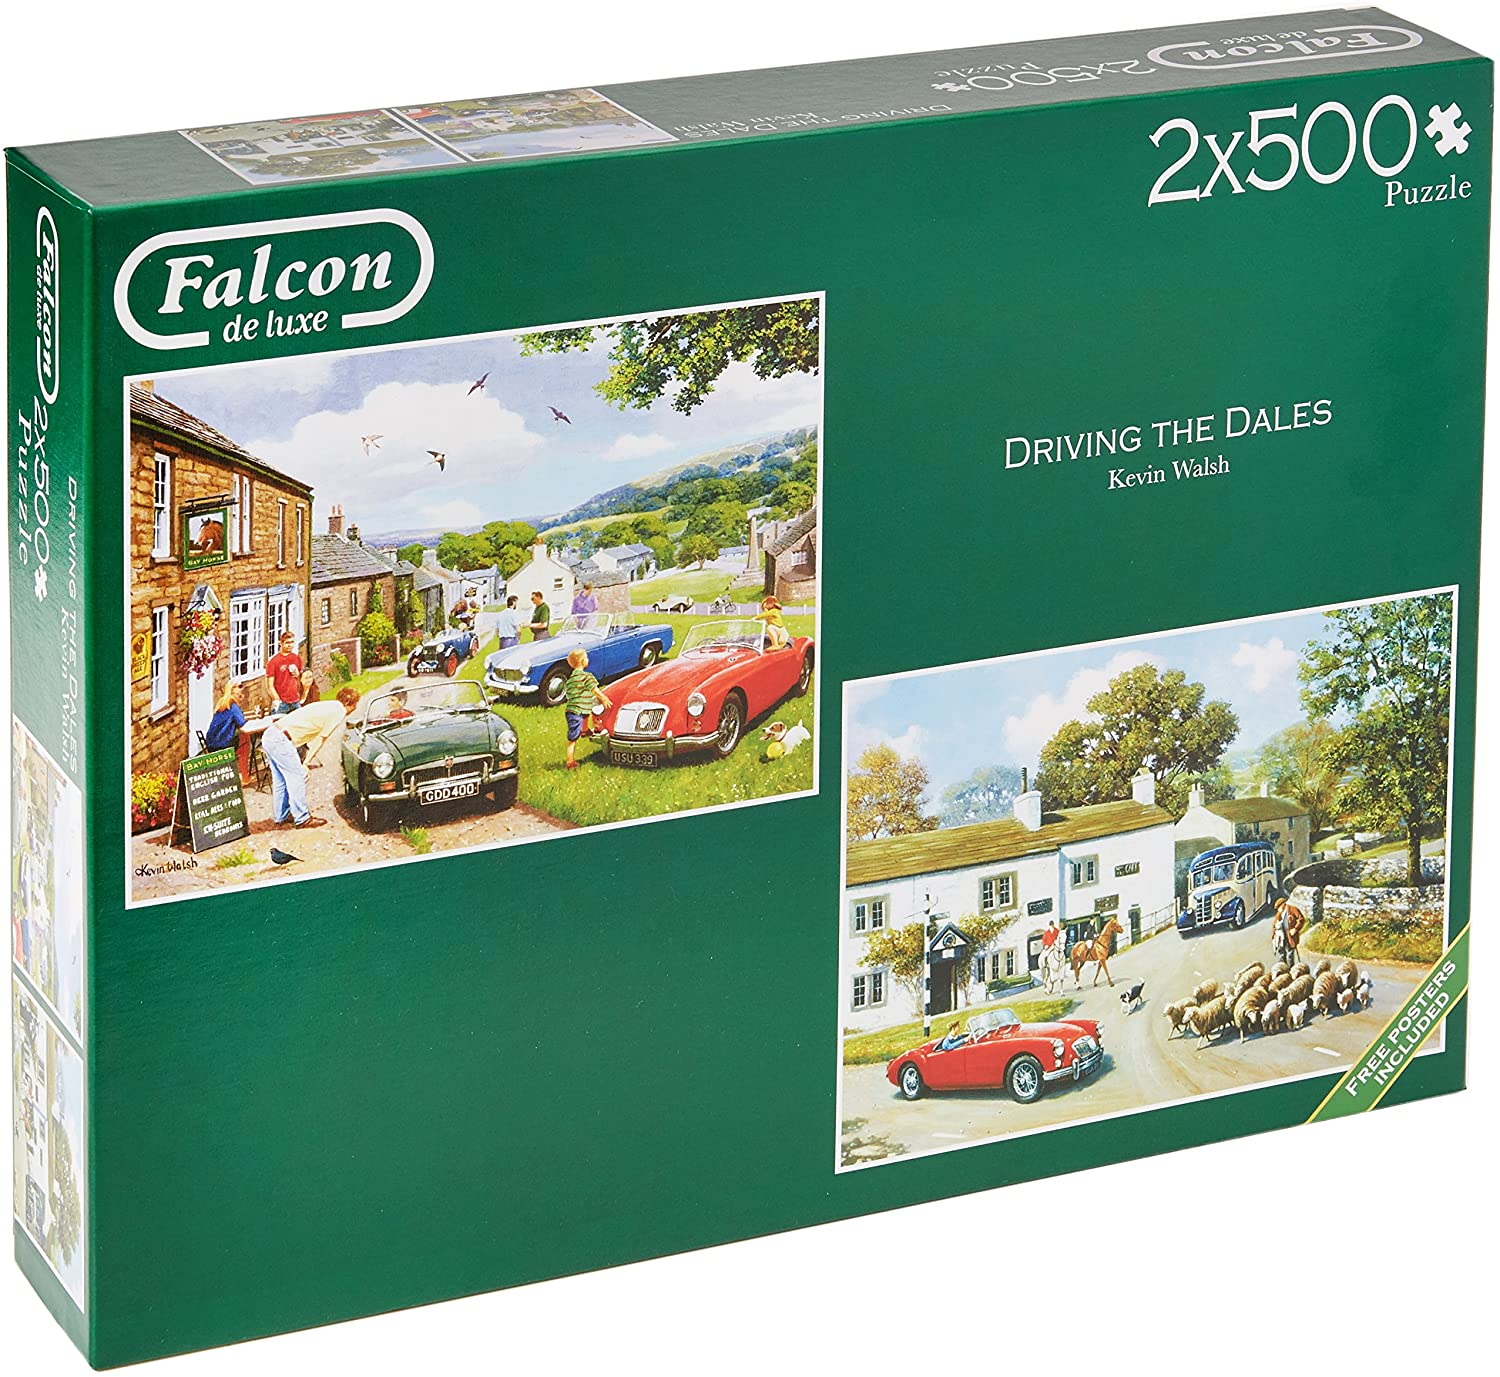 Jumbo 11215 Falcon de Luxe-Driving in The Dales, 2 x 500 Piece Jigsaw Puzzle